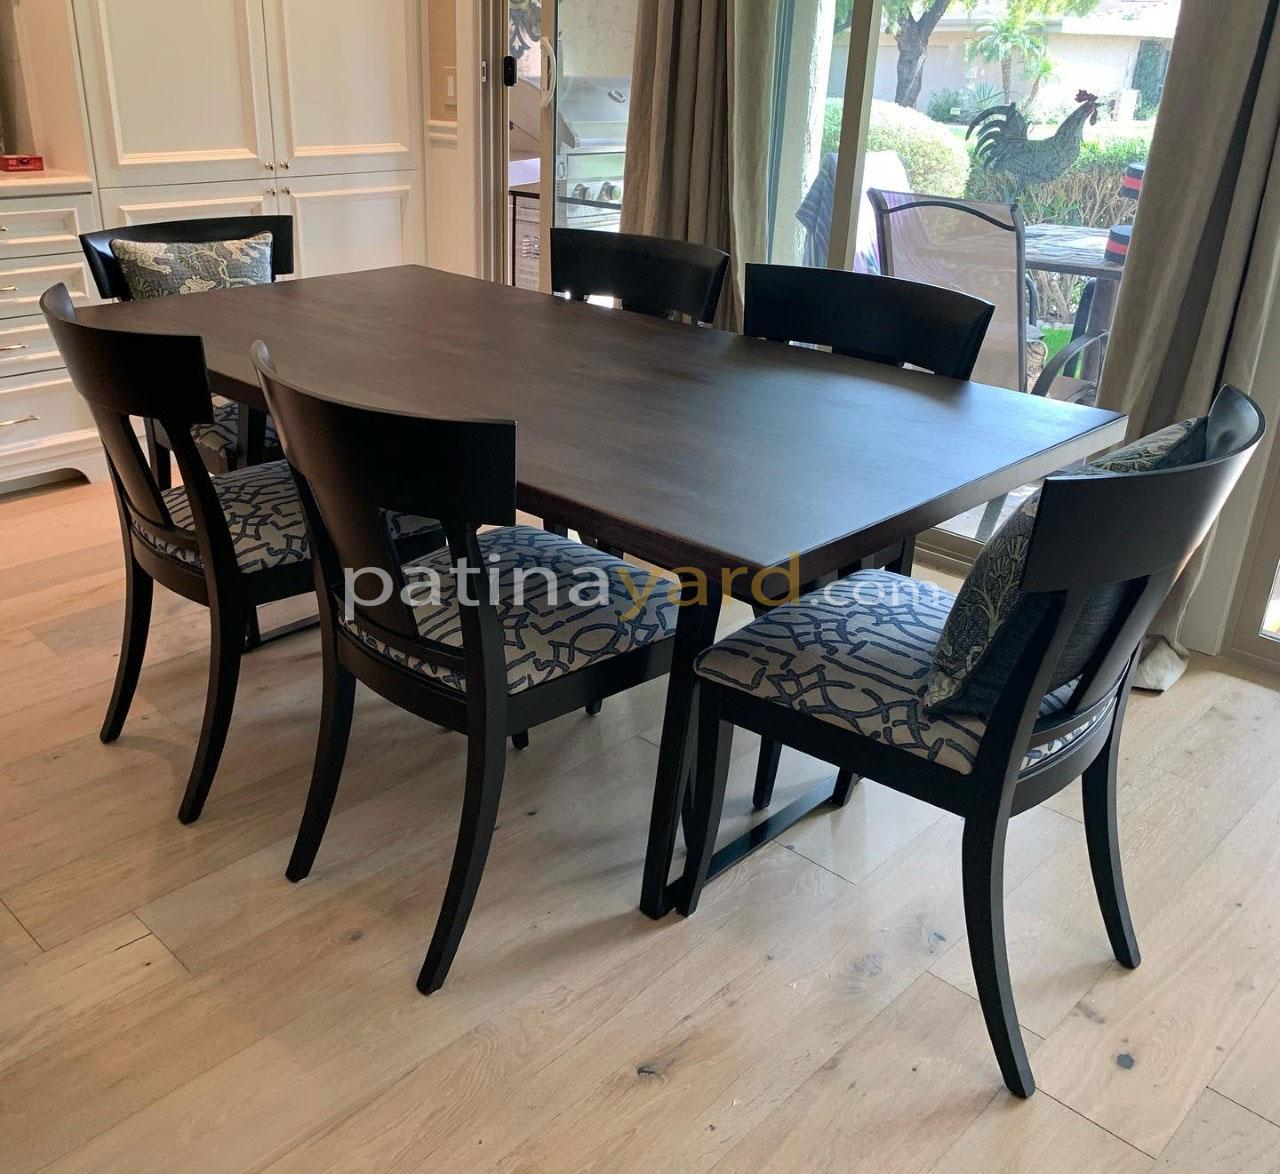 solid mahogany wood table top with tapered metal legs